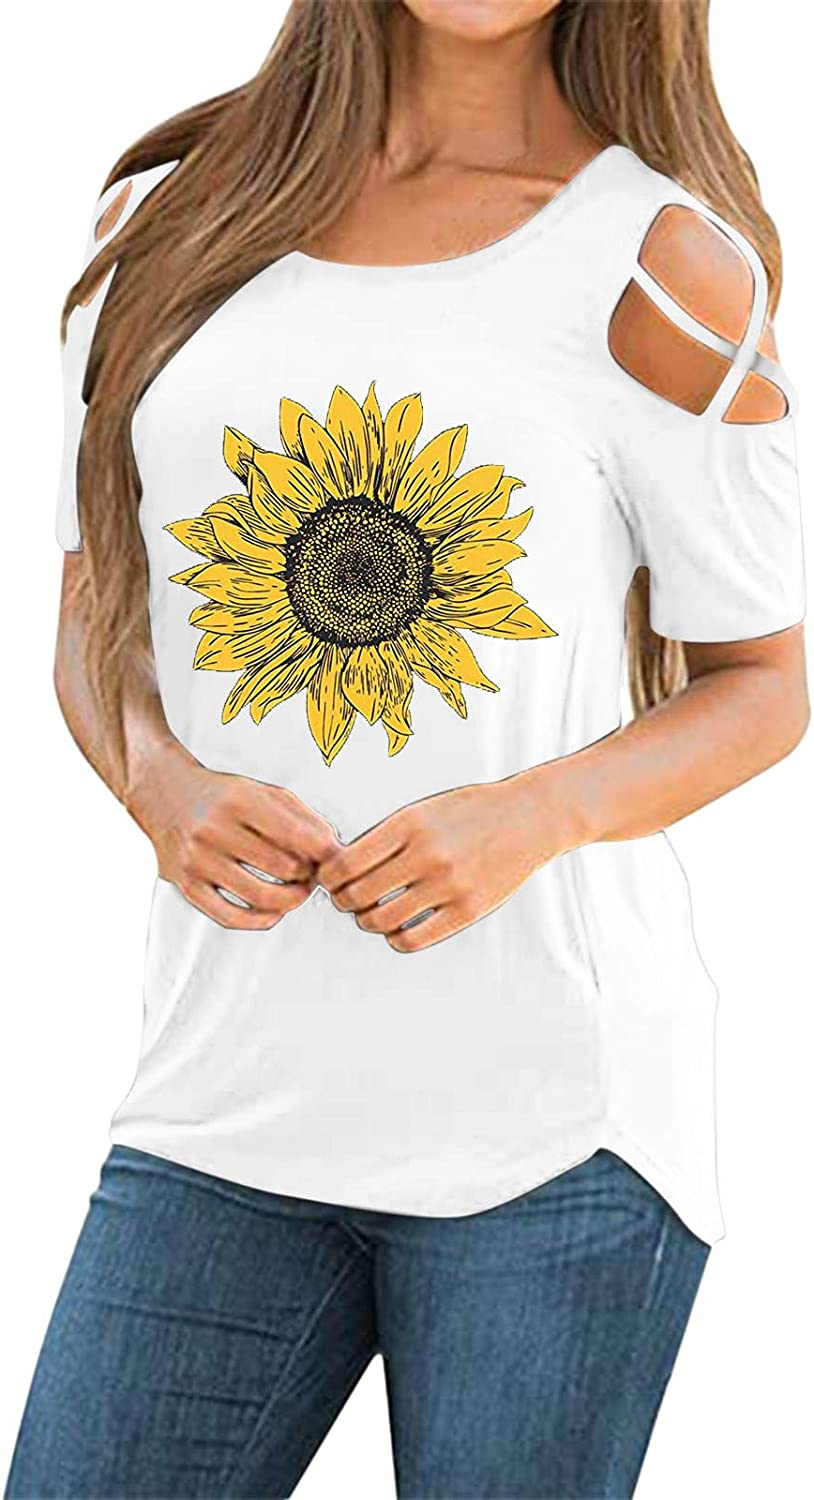 Summer Tops for Women,Womens Short Sleeve Crewneck T Shirts Tees Casual Loose Fit Strappy Cold Shoulder Tshirts Tops